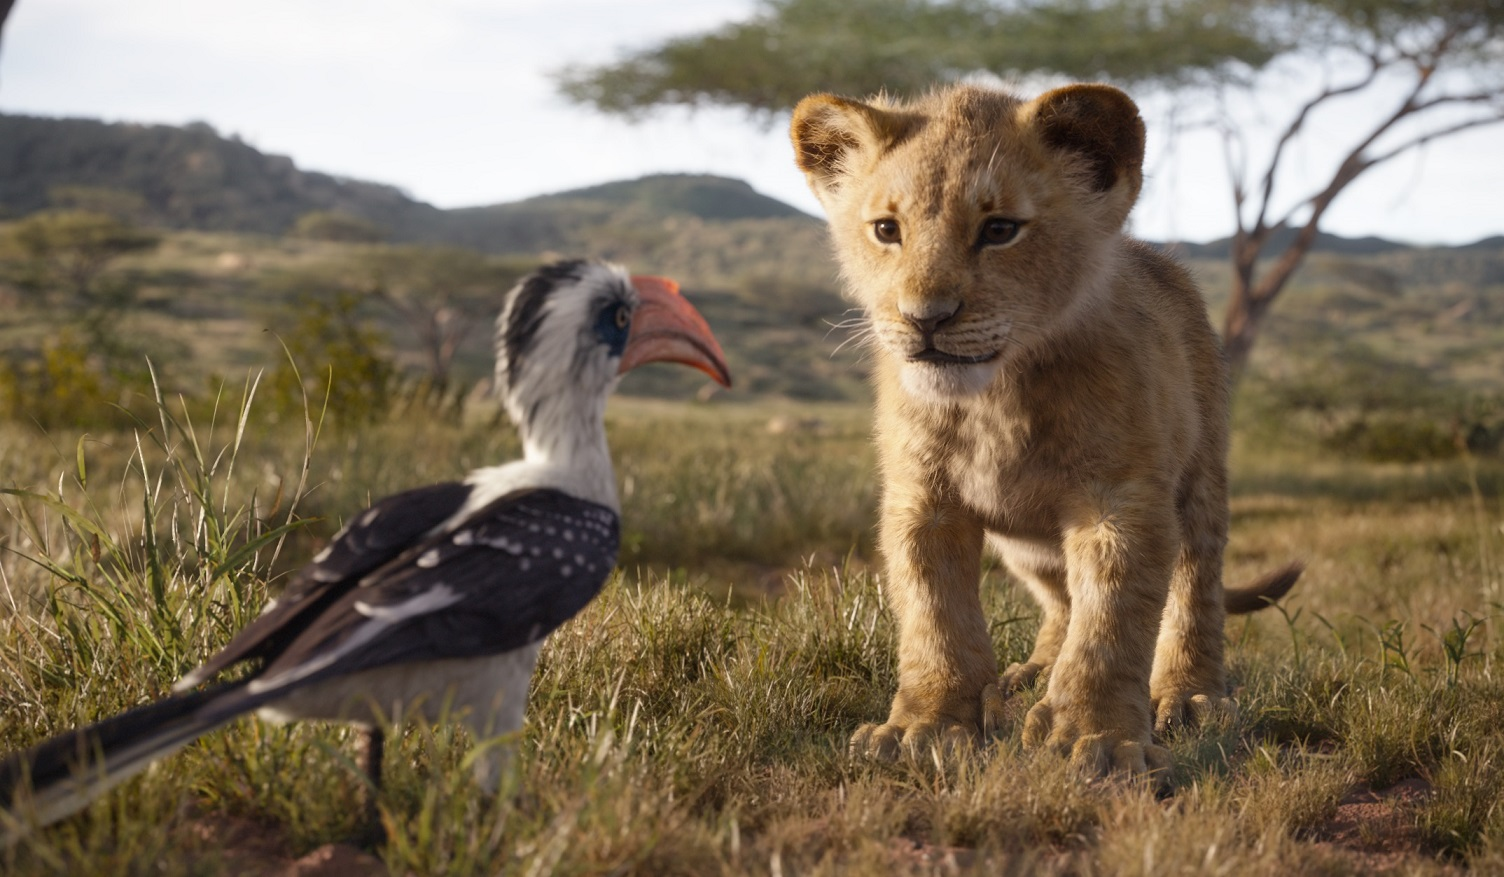 kadr z filmu THE LION KING